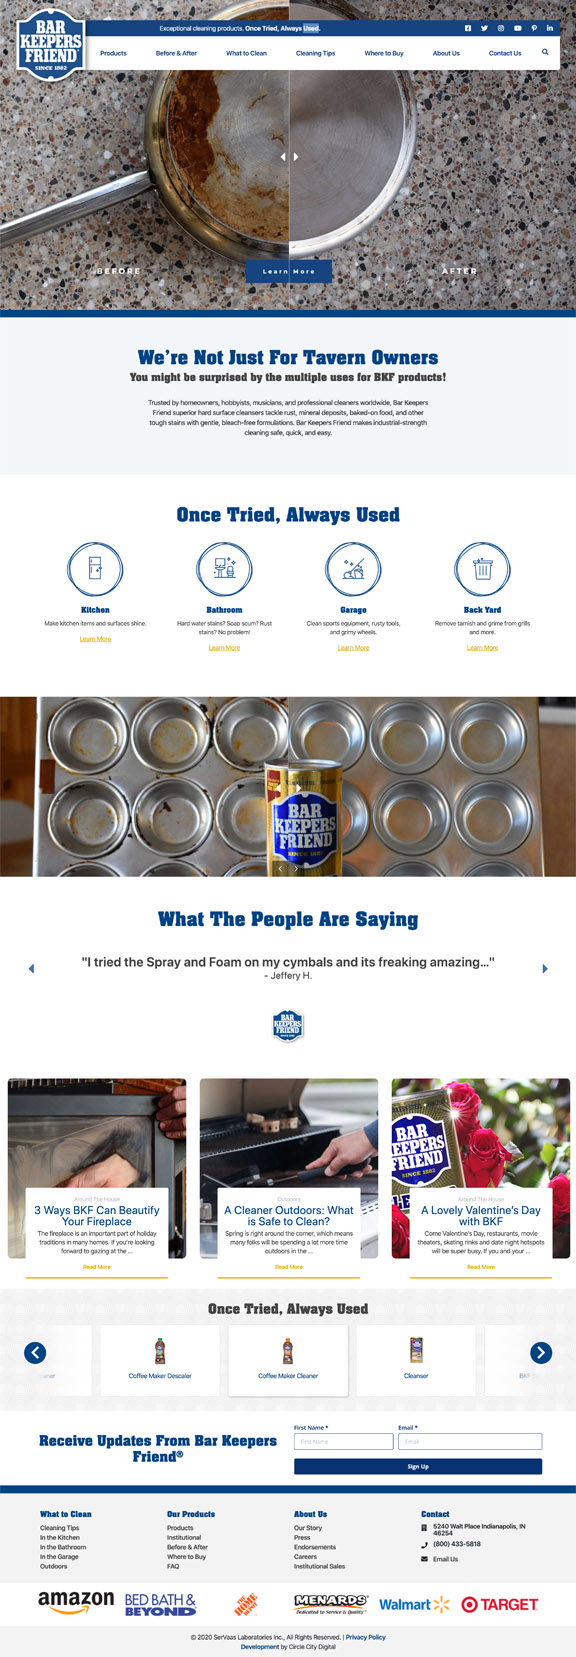 bar keepers friend website design